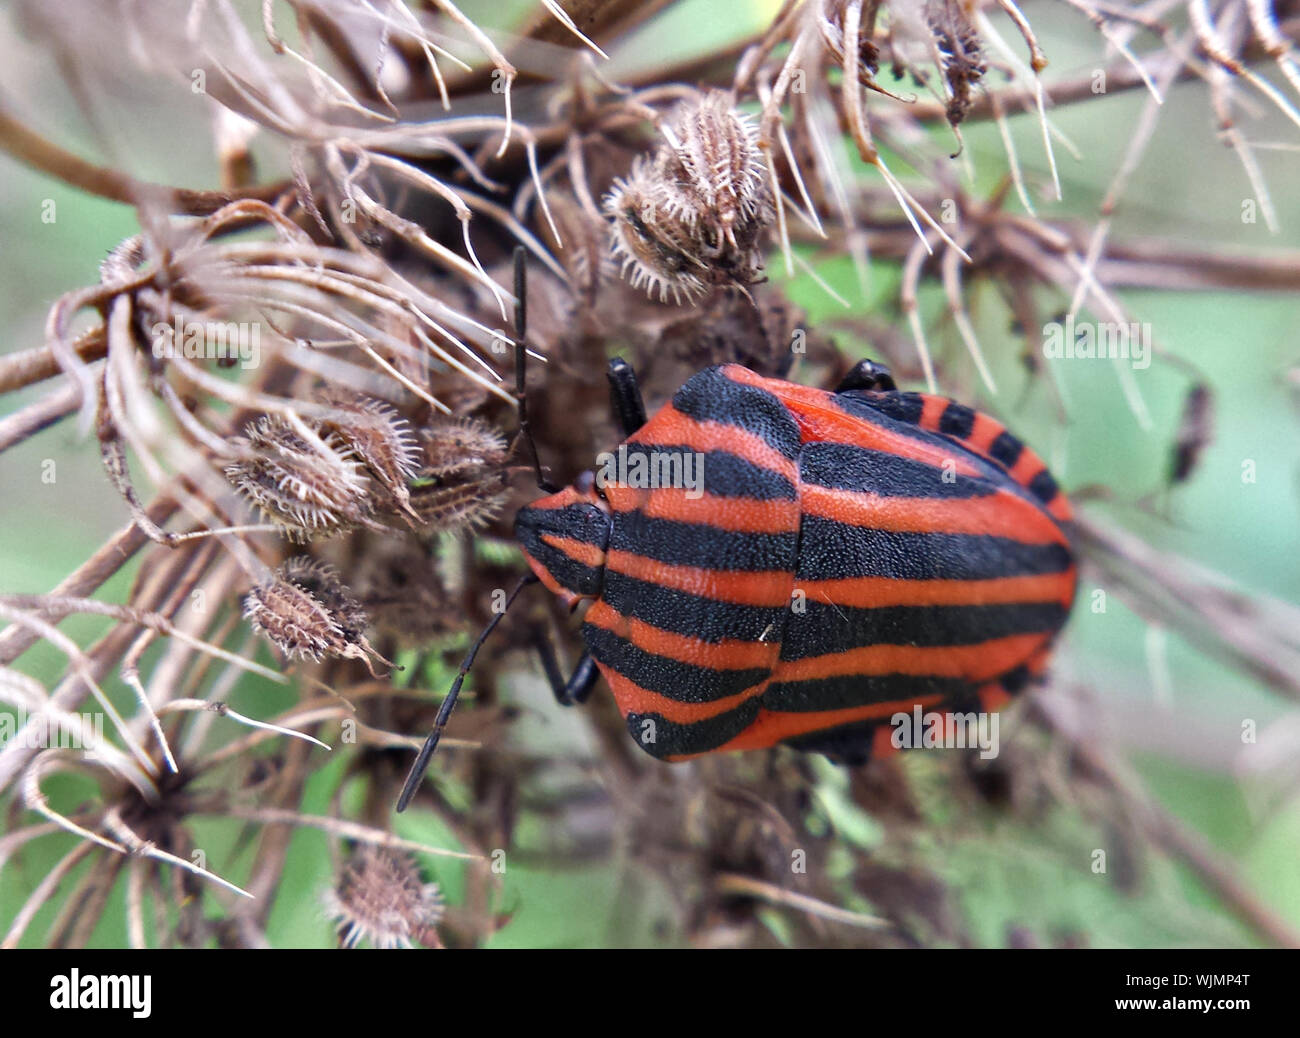 Close-up Of Graphosoma Lineatum On Plant Stock Photo